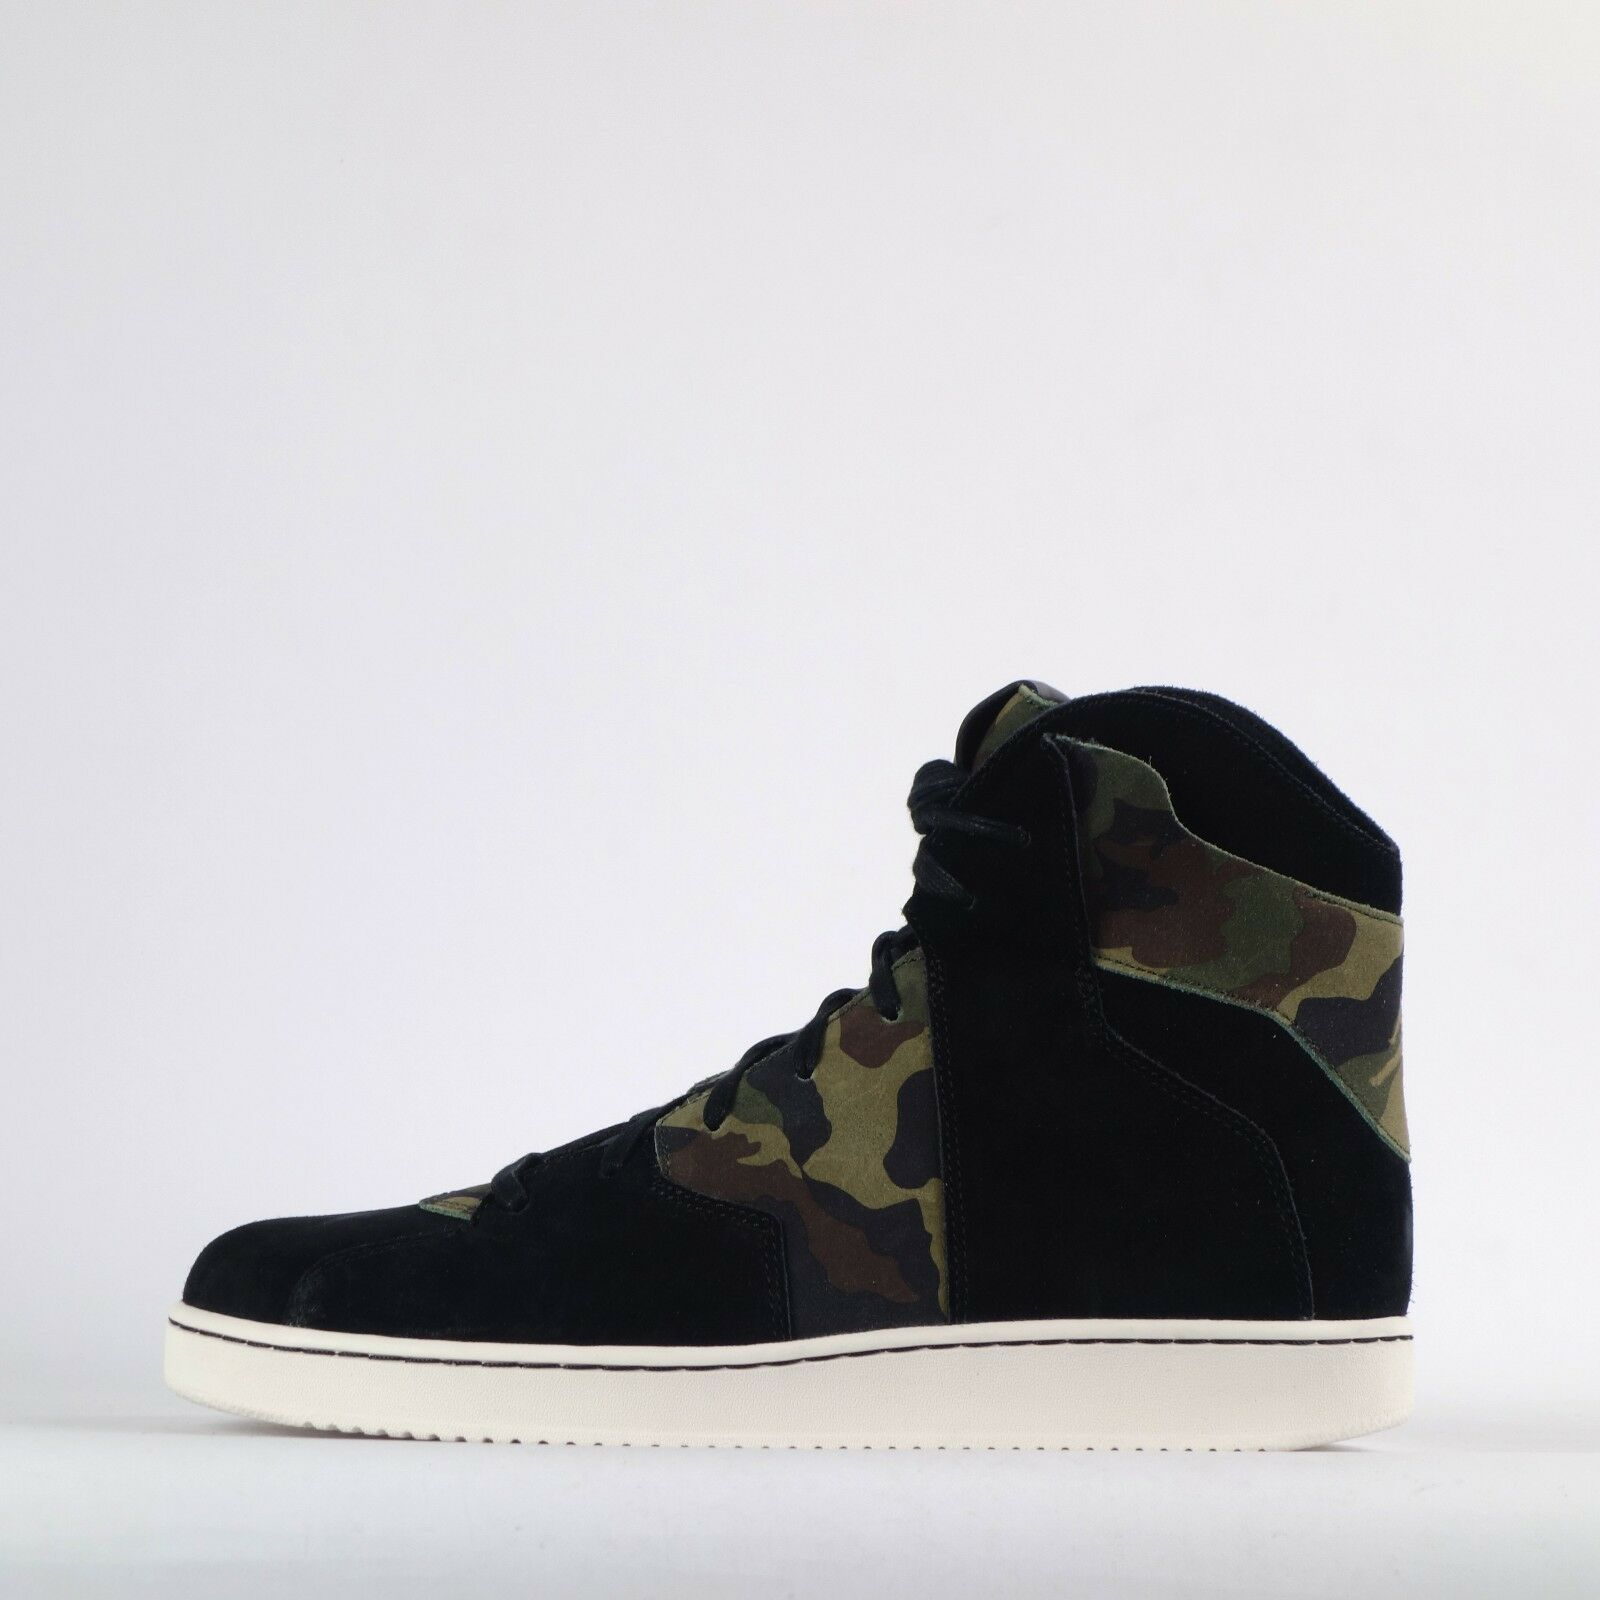 Nike Jordan Westbrook 0.2 Camo Mens Hi Top Casual Trainers Shoes Black/Sail